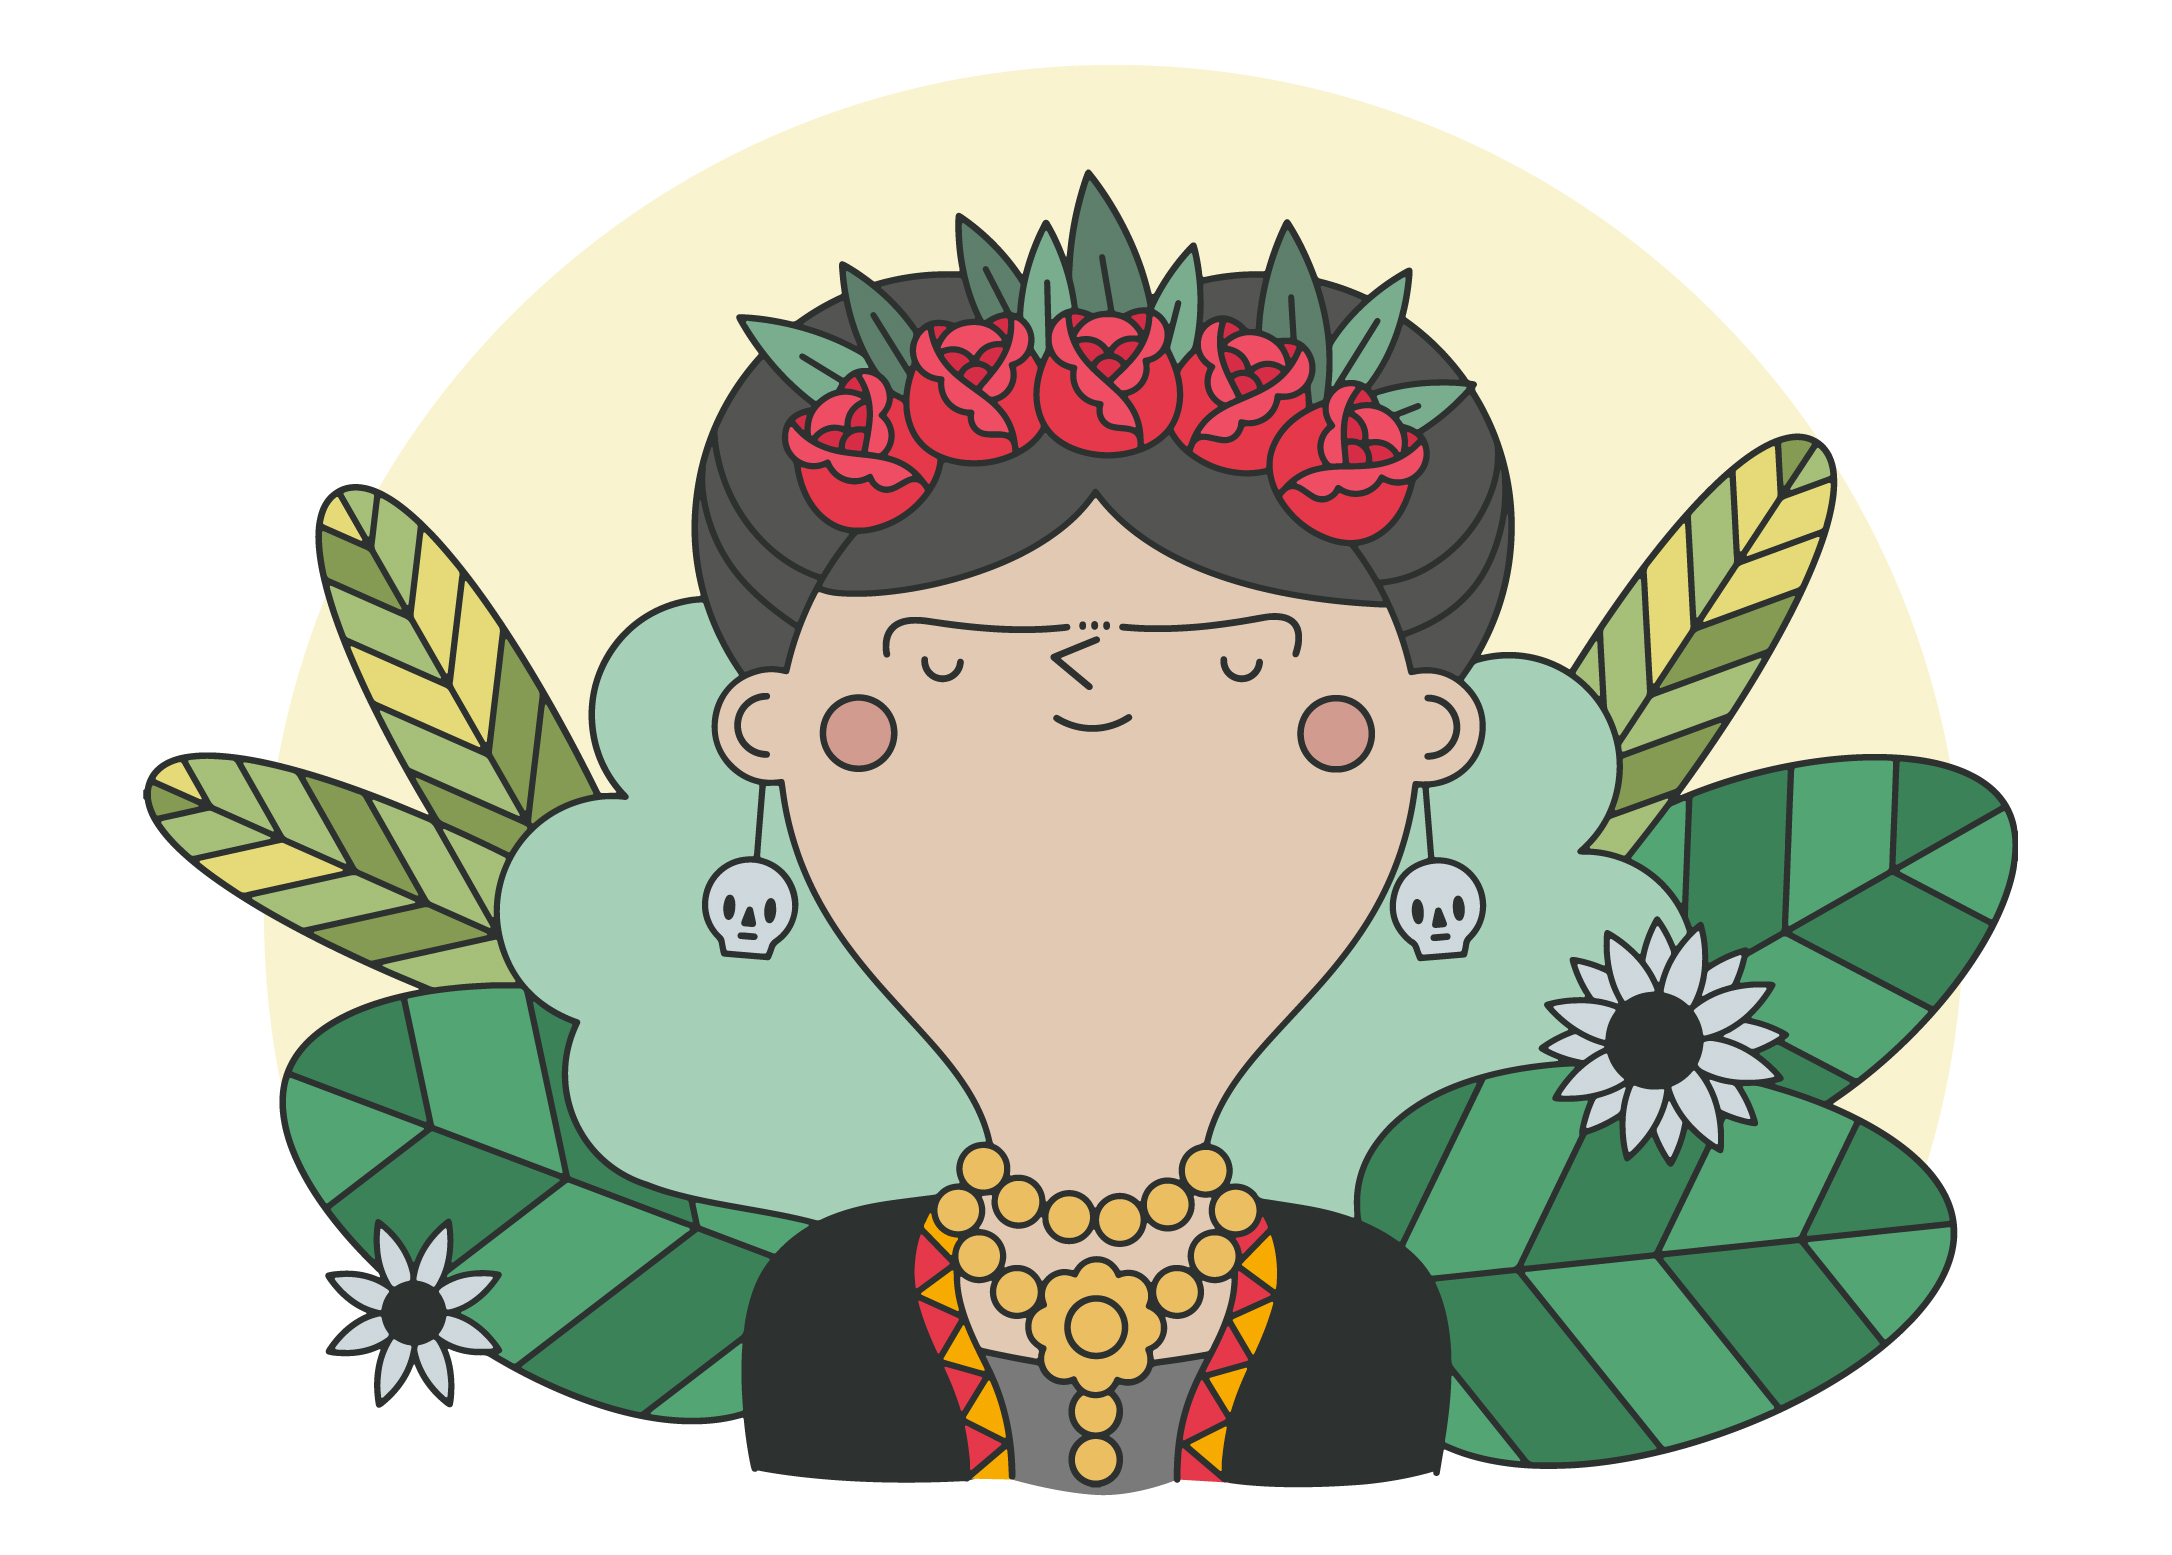 Frida kahlo vector clipart jpg freeuse stock Frida Kahlo Free Vector Art - (1,008 Free Downloads) jpg freeuse stock